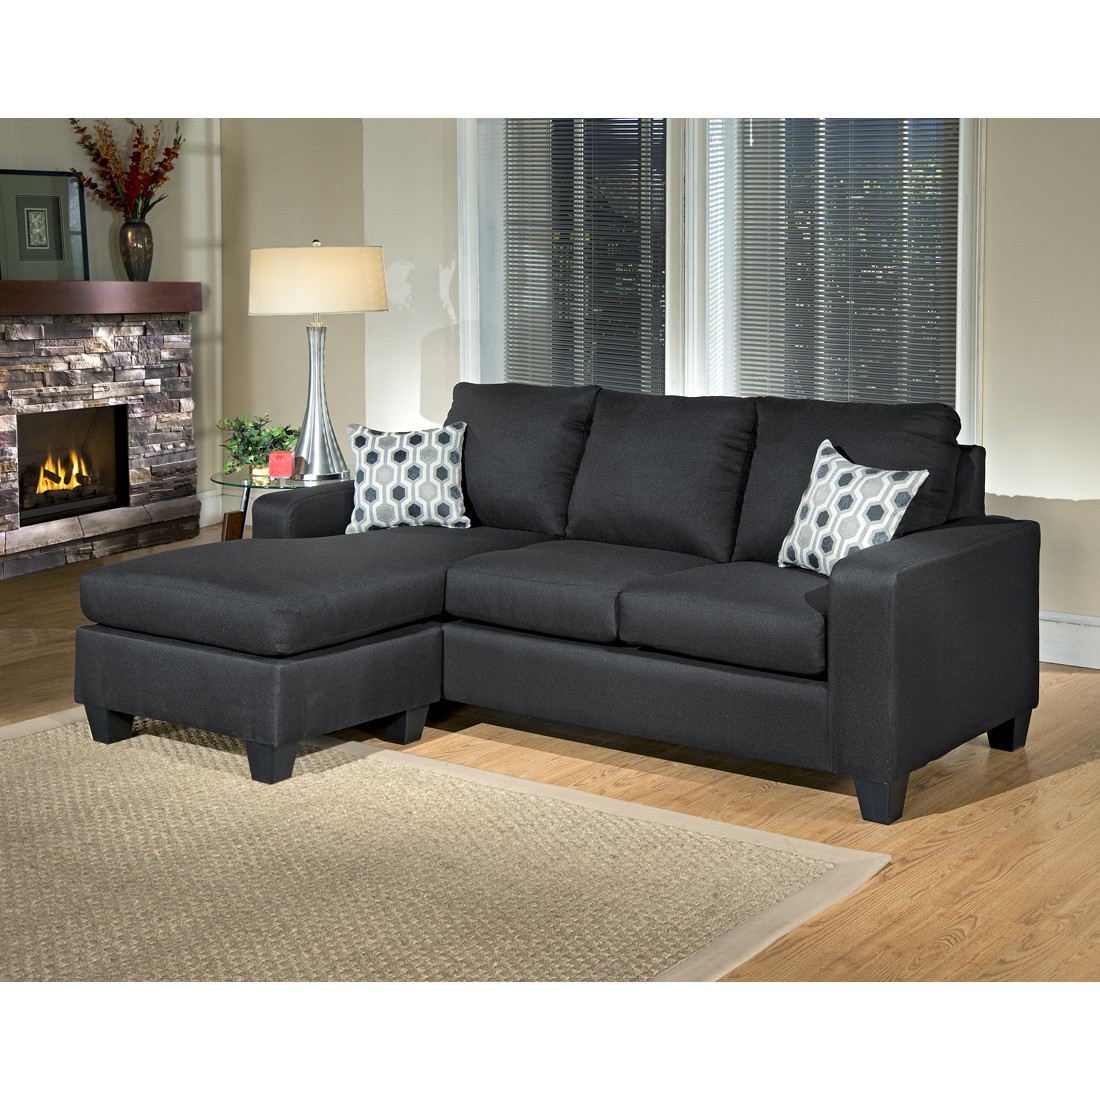 Lazy Boy Sectional Sleeper Sofa | Sectional Sleeper Sofa | Sectional Sofa with Queen Sleeper